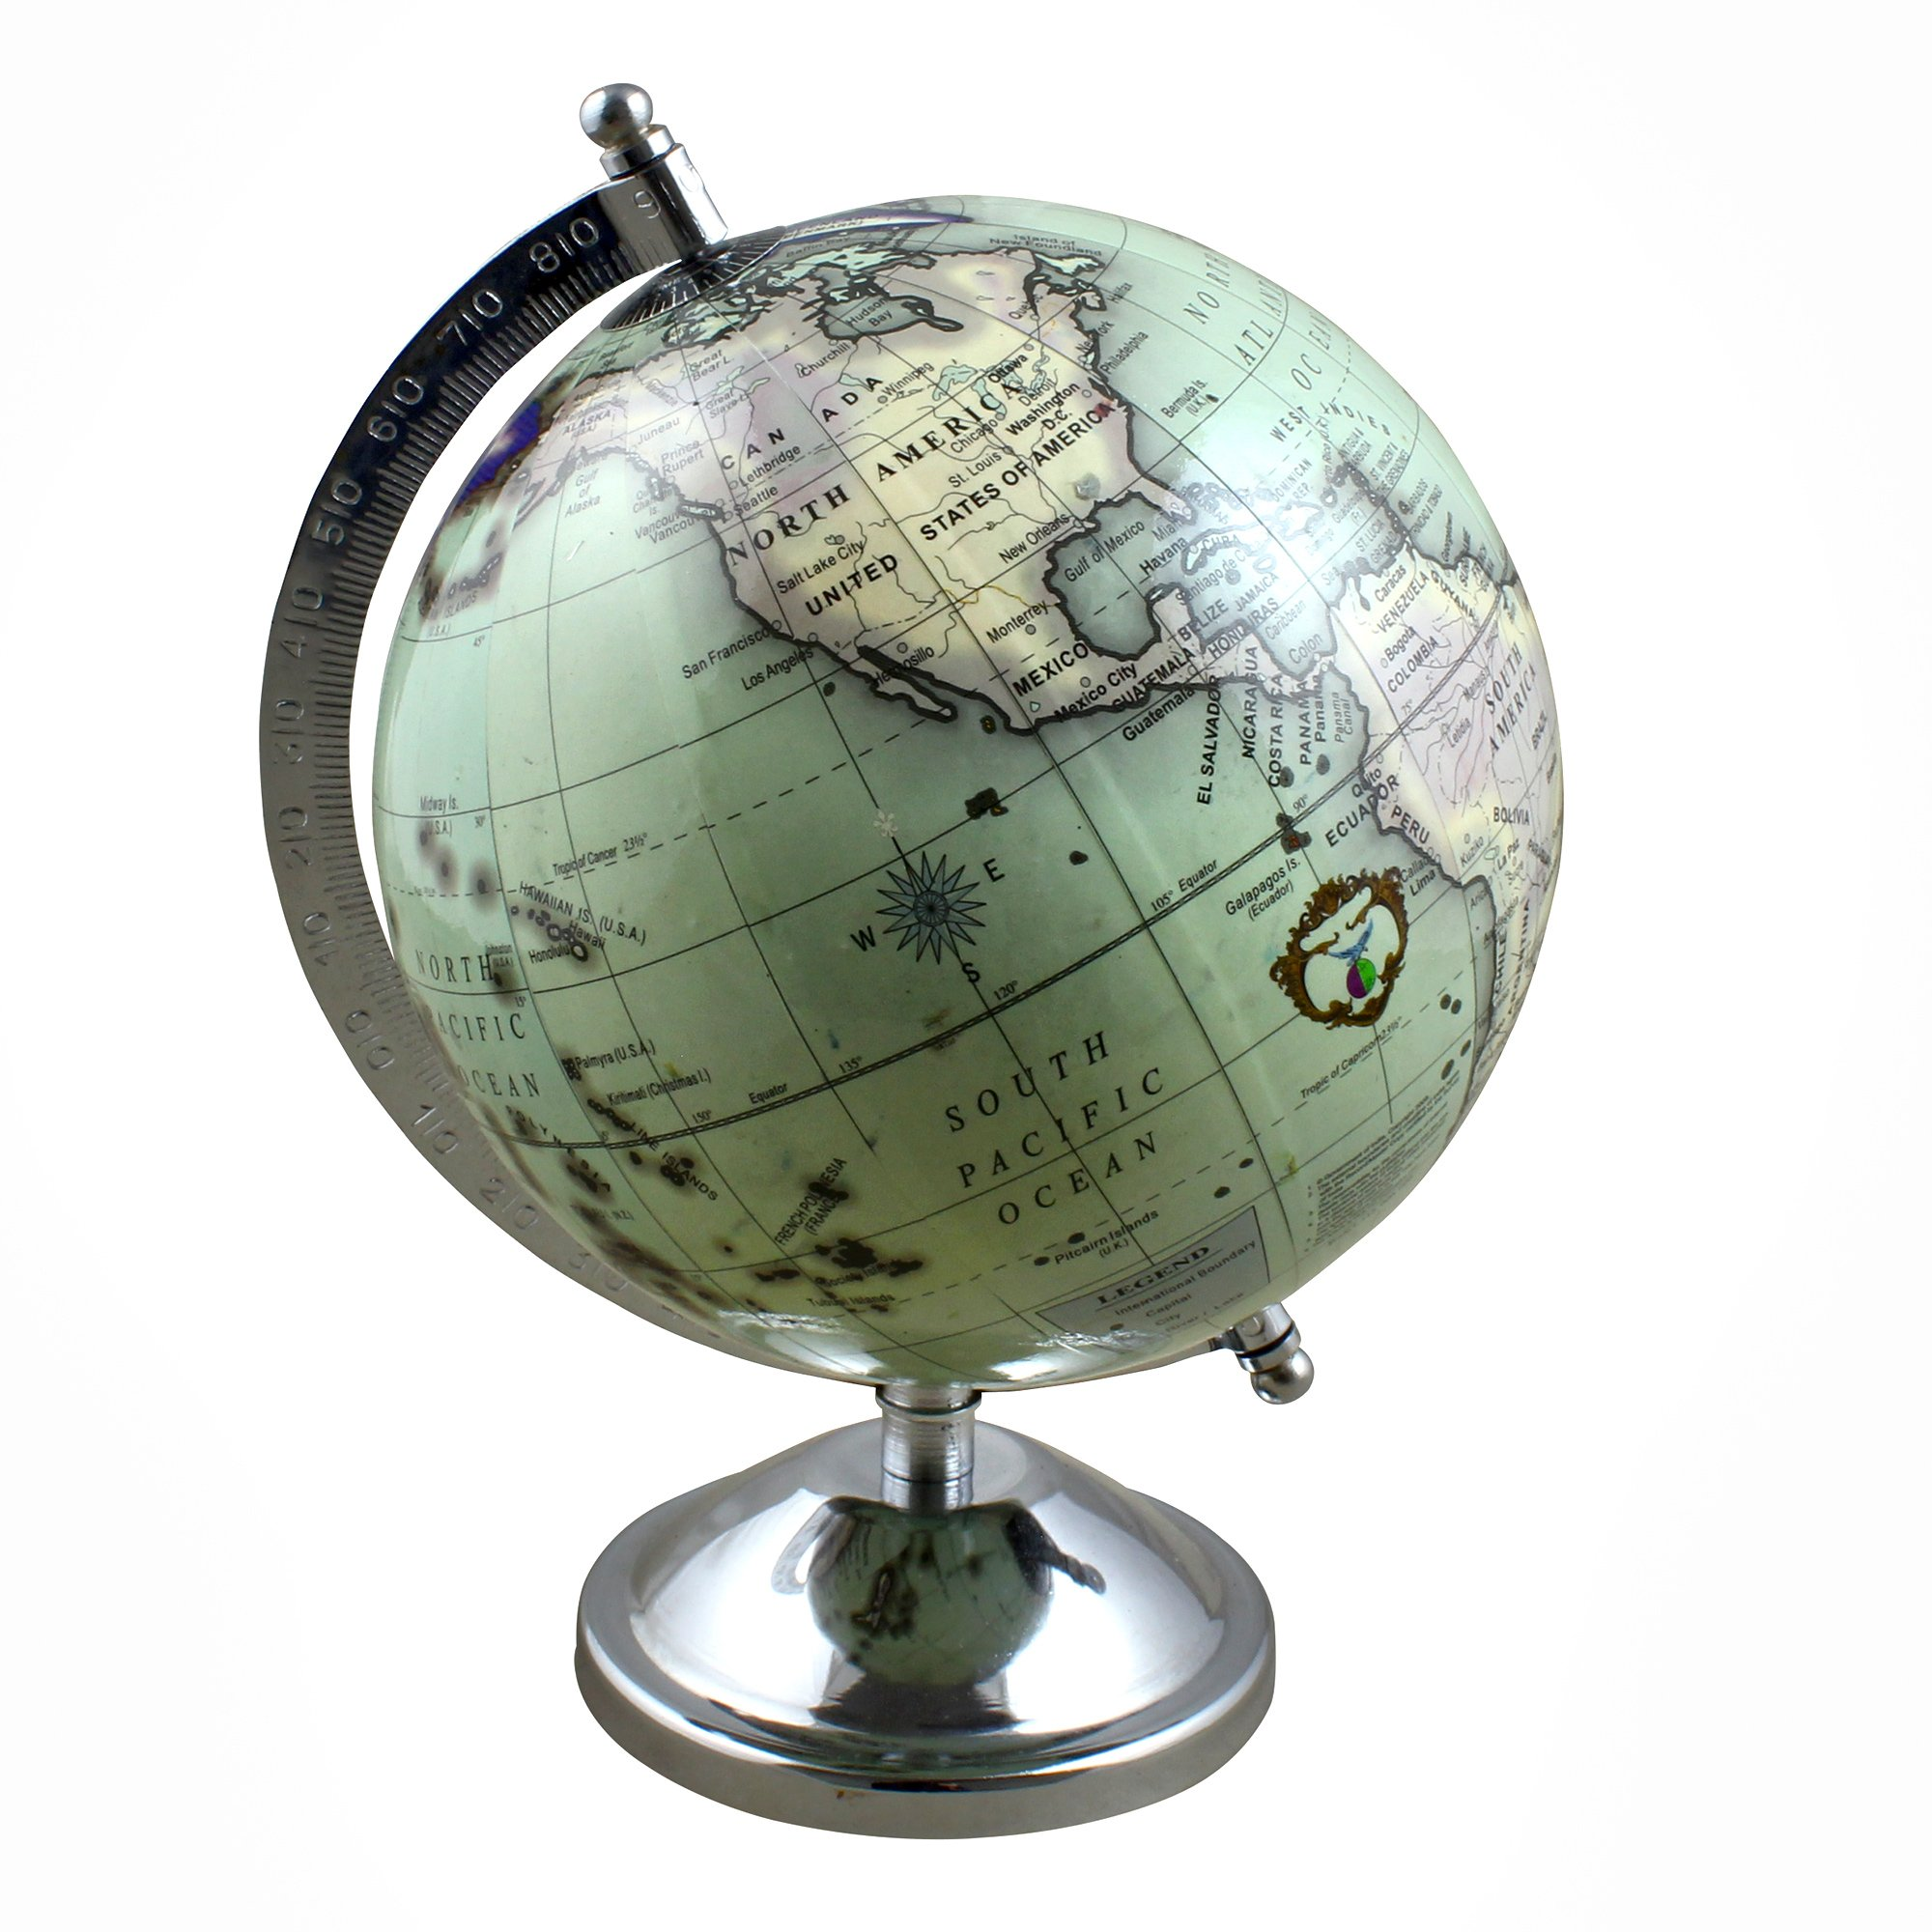 Stock Clearance Sale!! Rotating Desk Globe Earth Map with Stand, 9 Inches for Home School Desk Decorations Gift